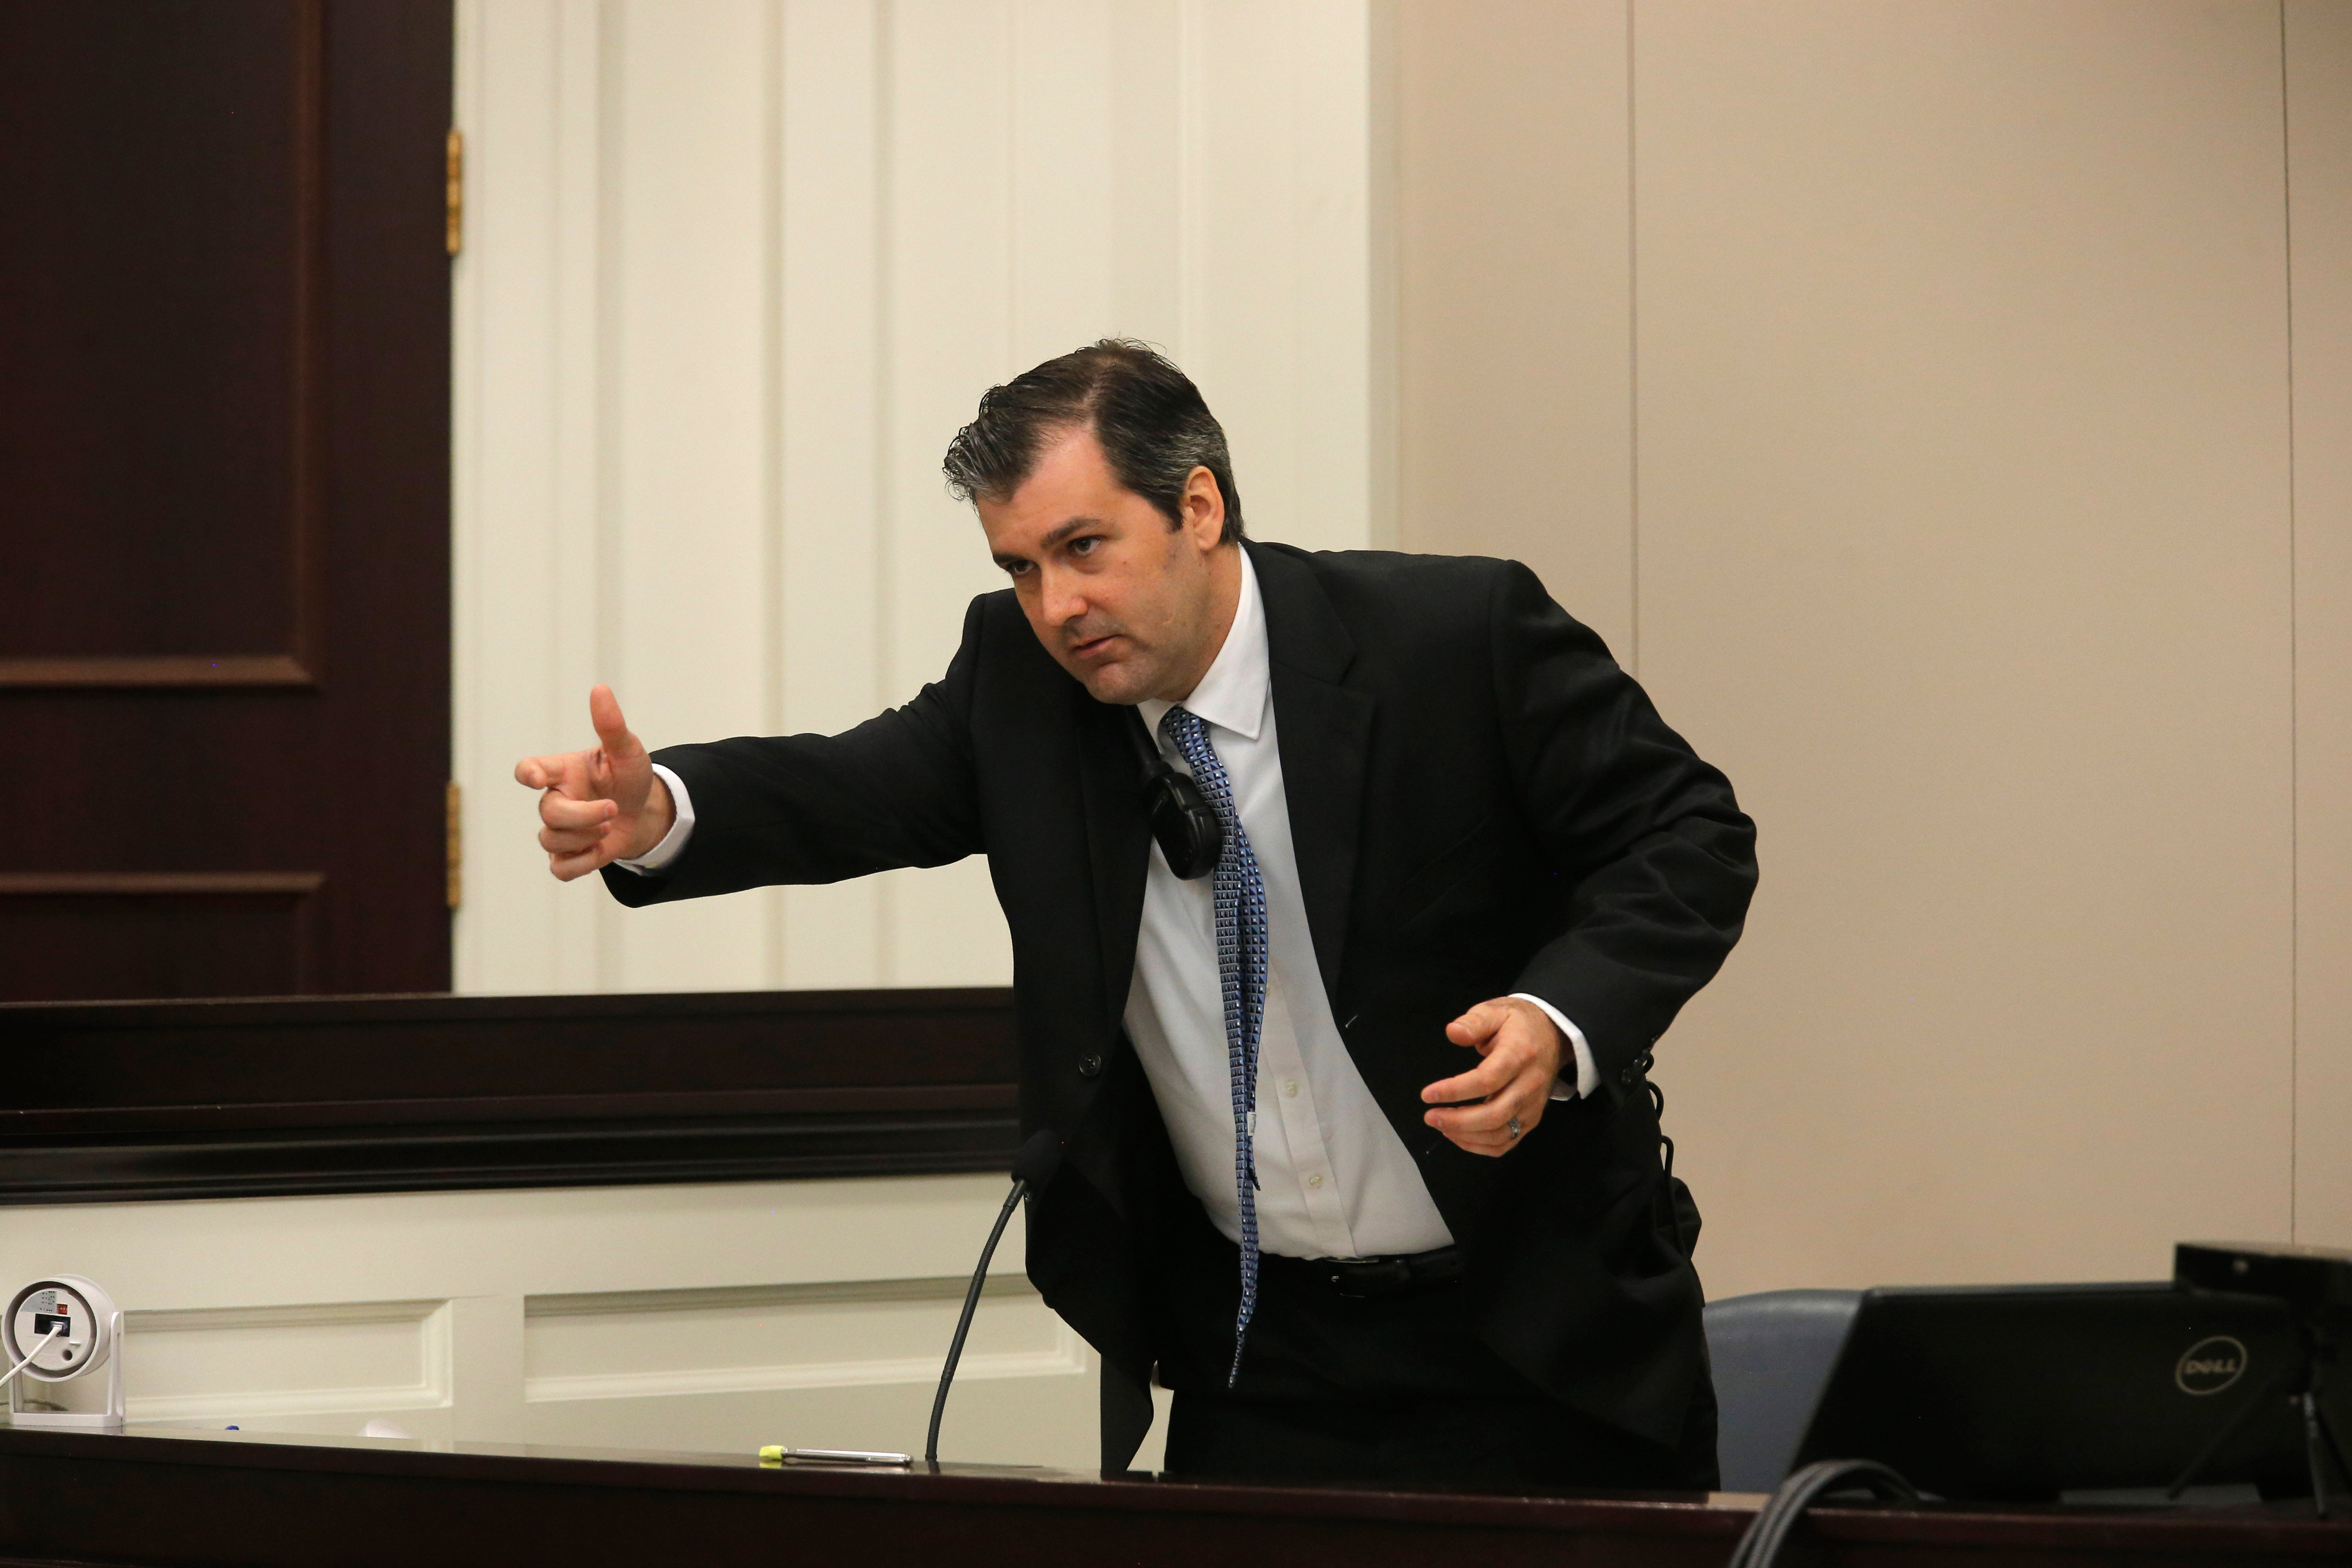 Justice For Walter Scott: Federal Civil Rights Trial For Michael Slager To Begin In Spring